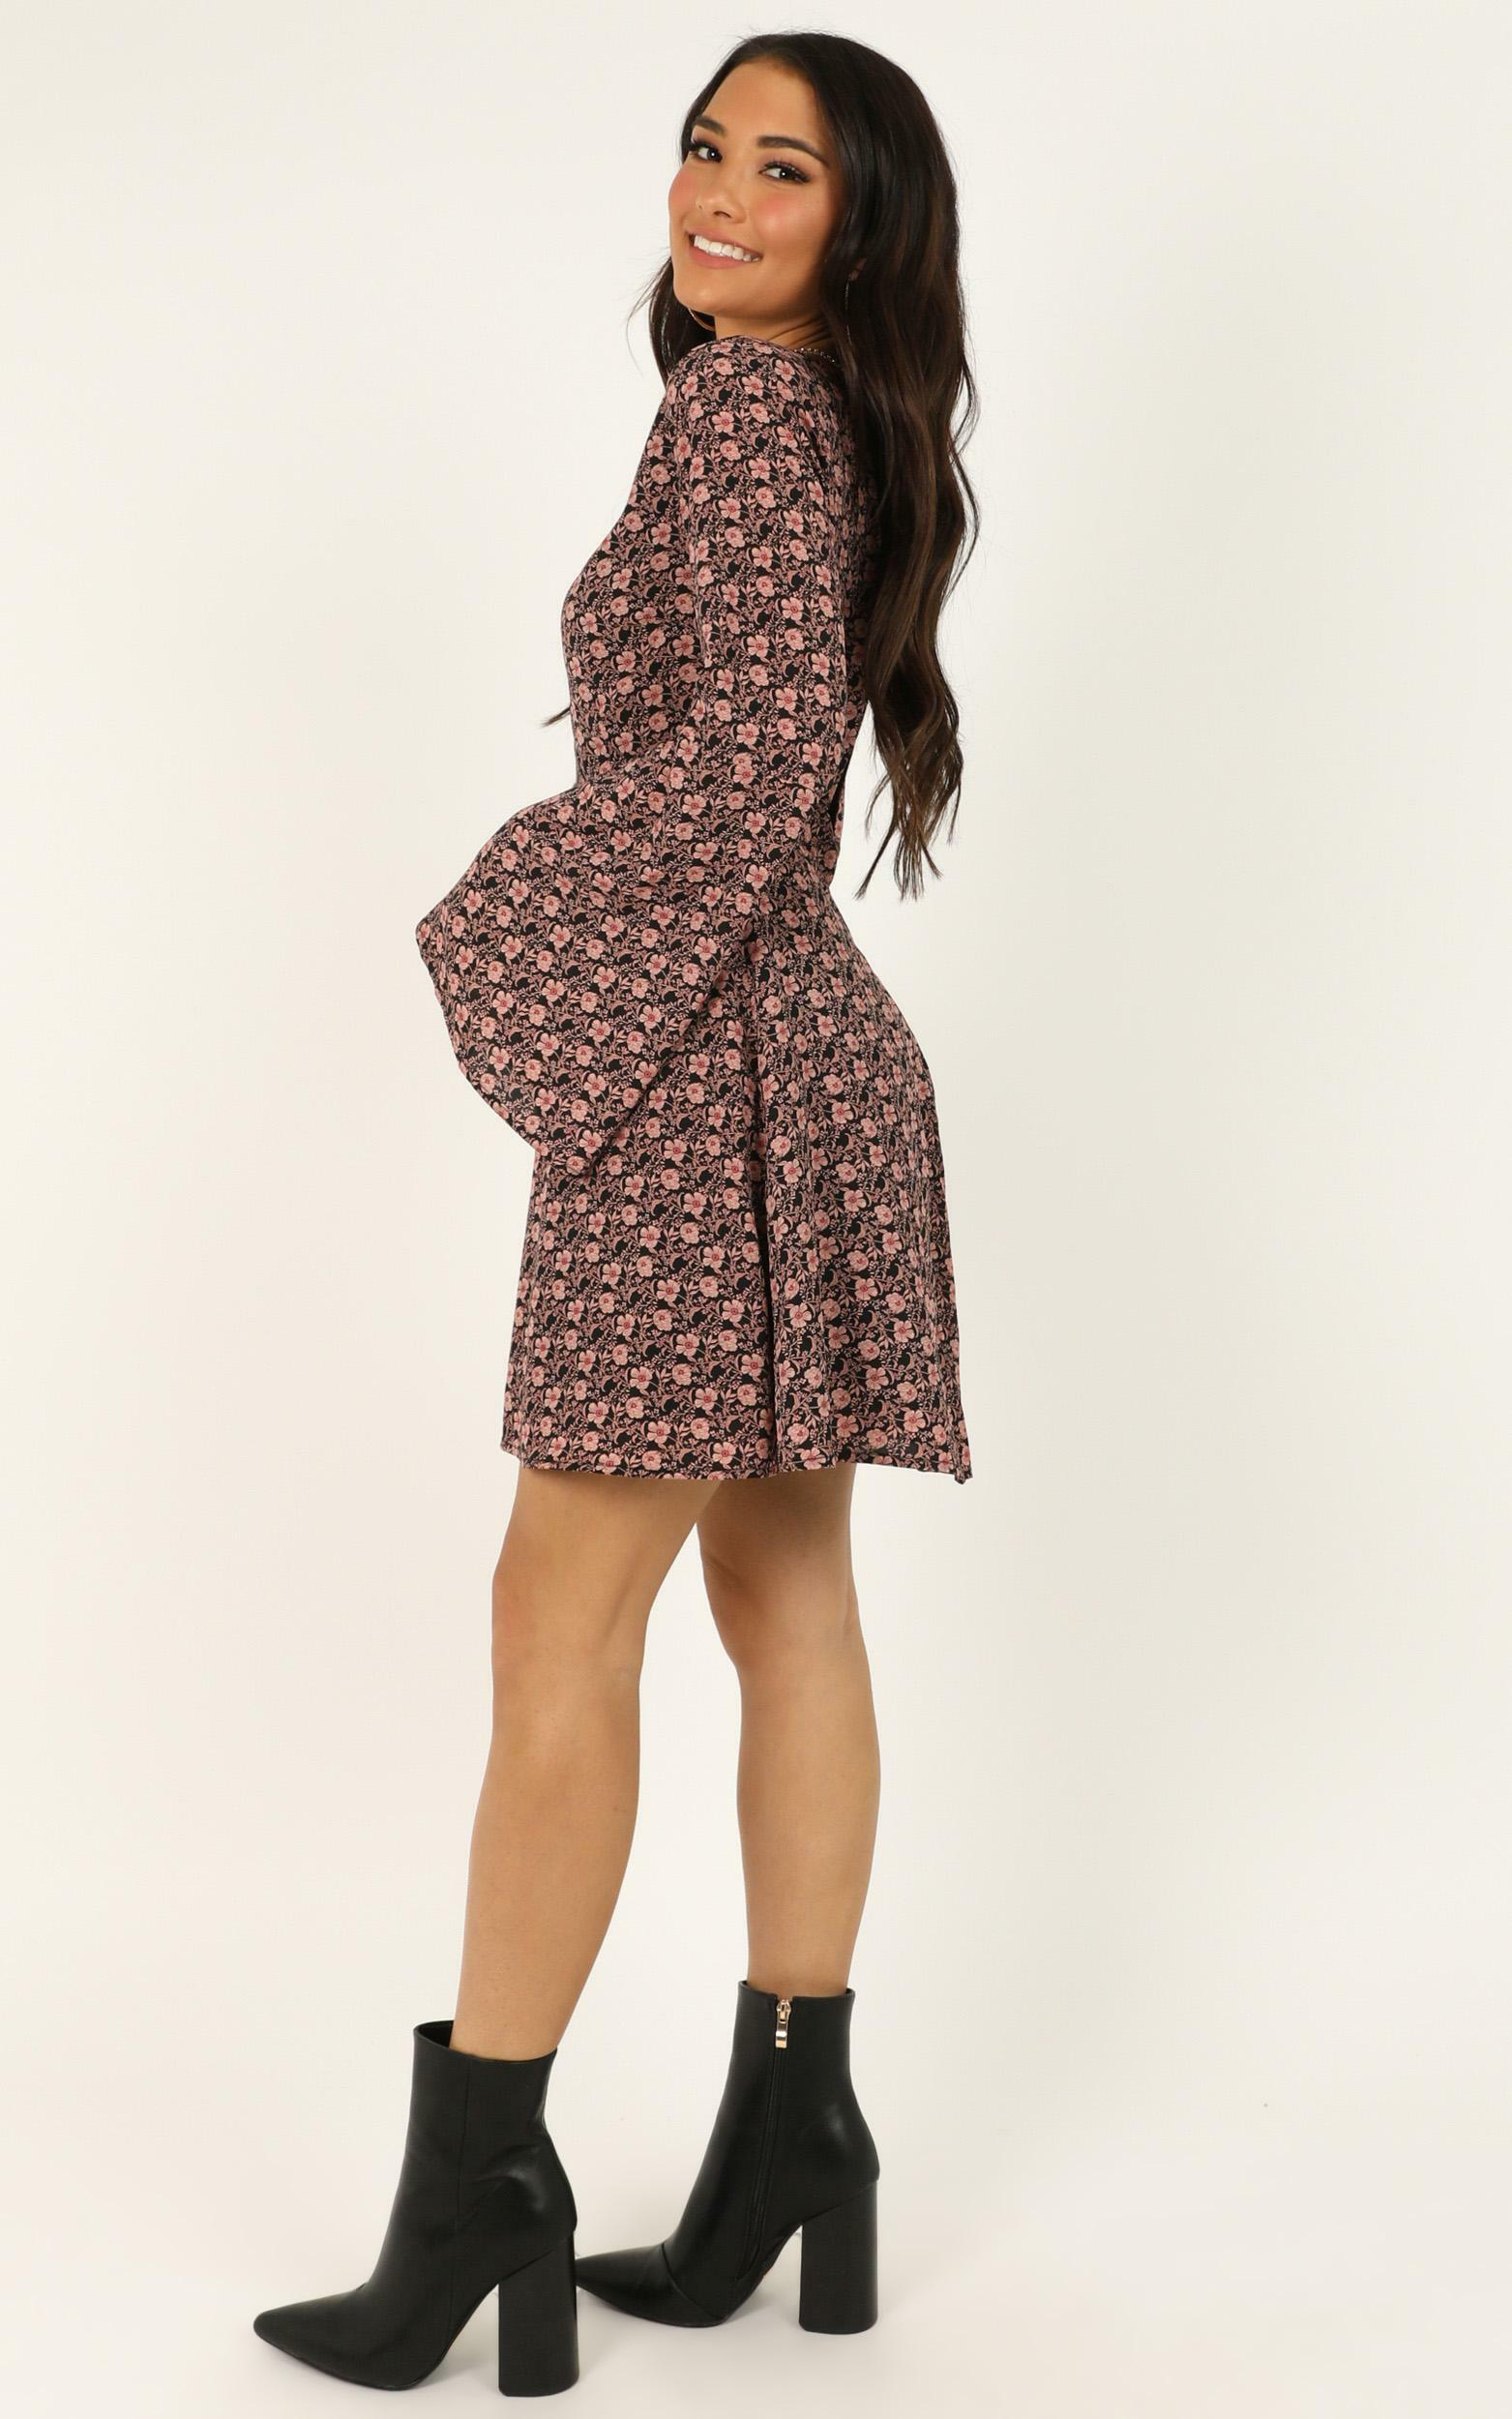 Daily Lift Dress in black - 20 (XXXXL), Black, hi-res image number null